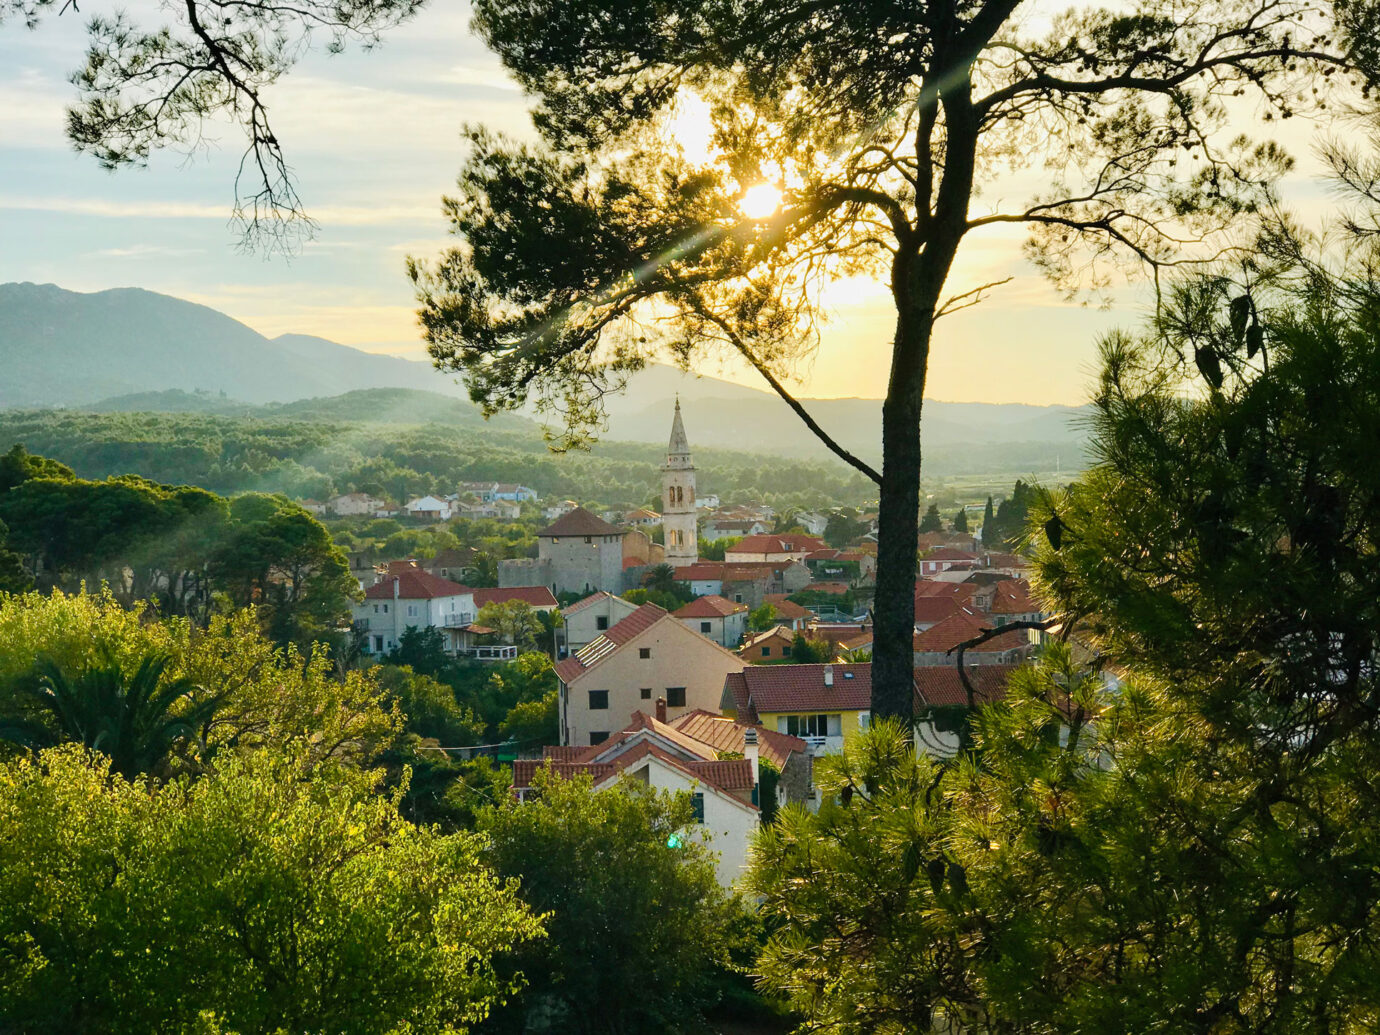 View of the village of Hvar just before sunset